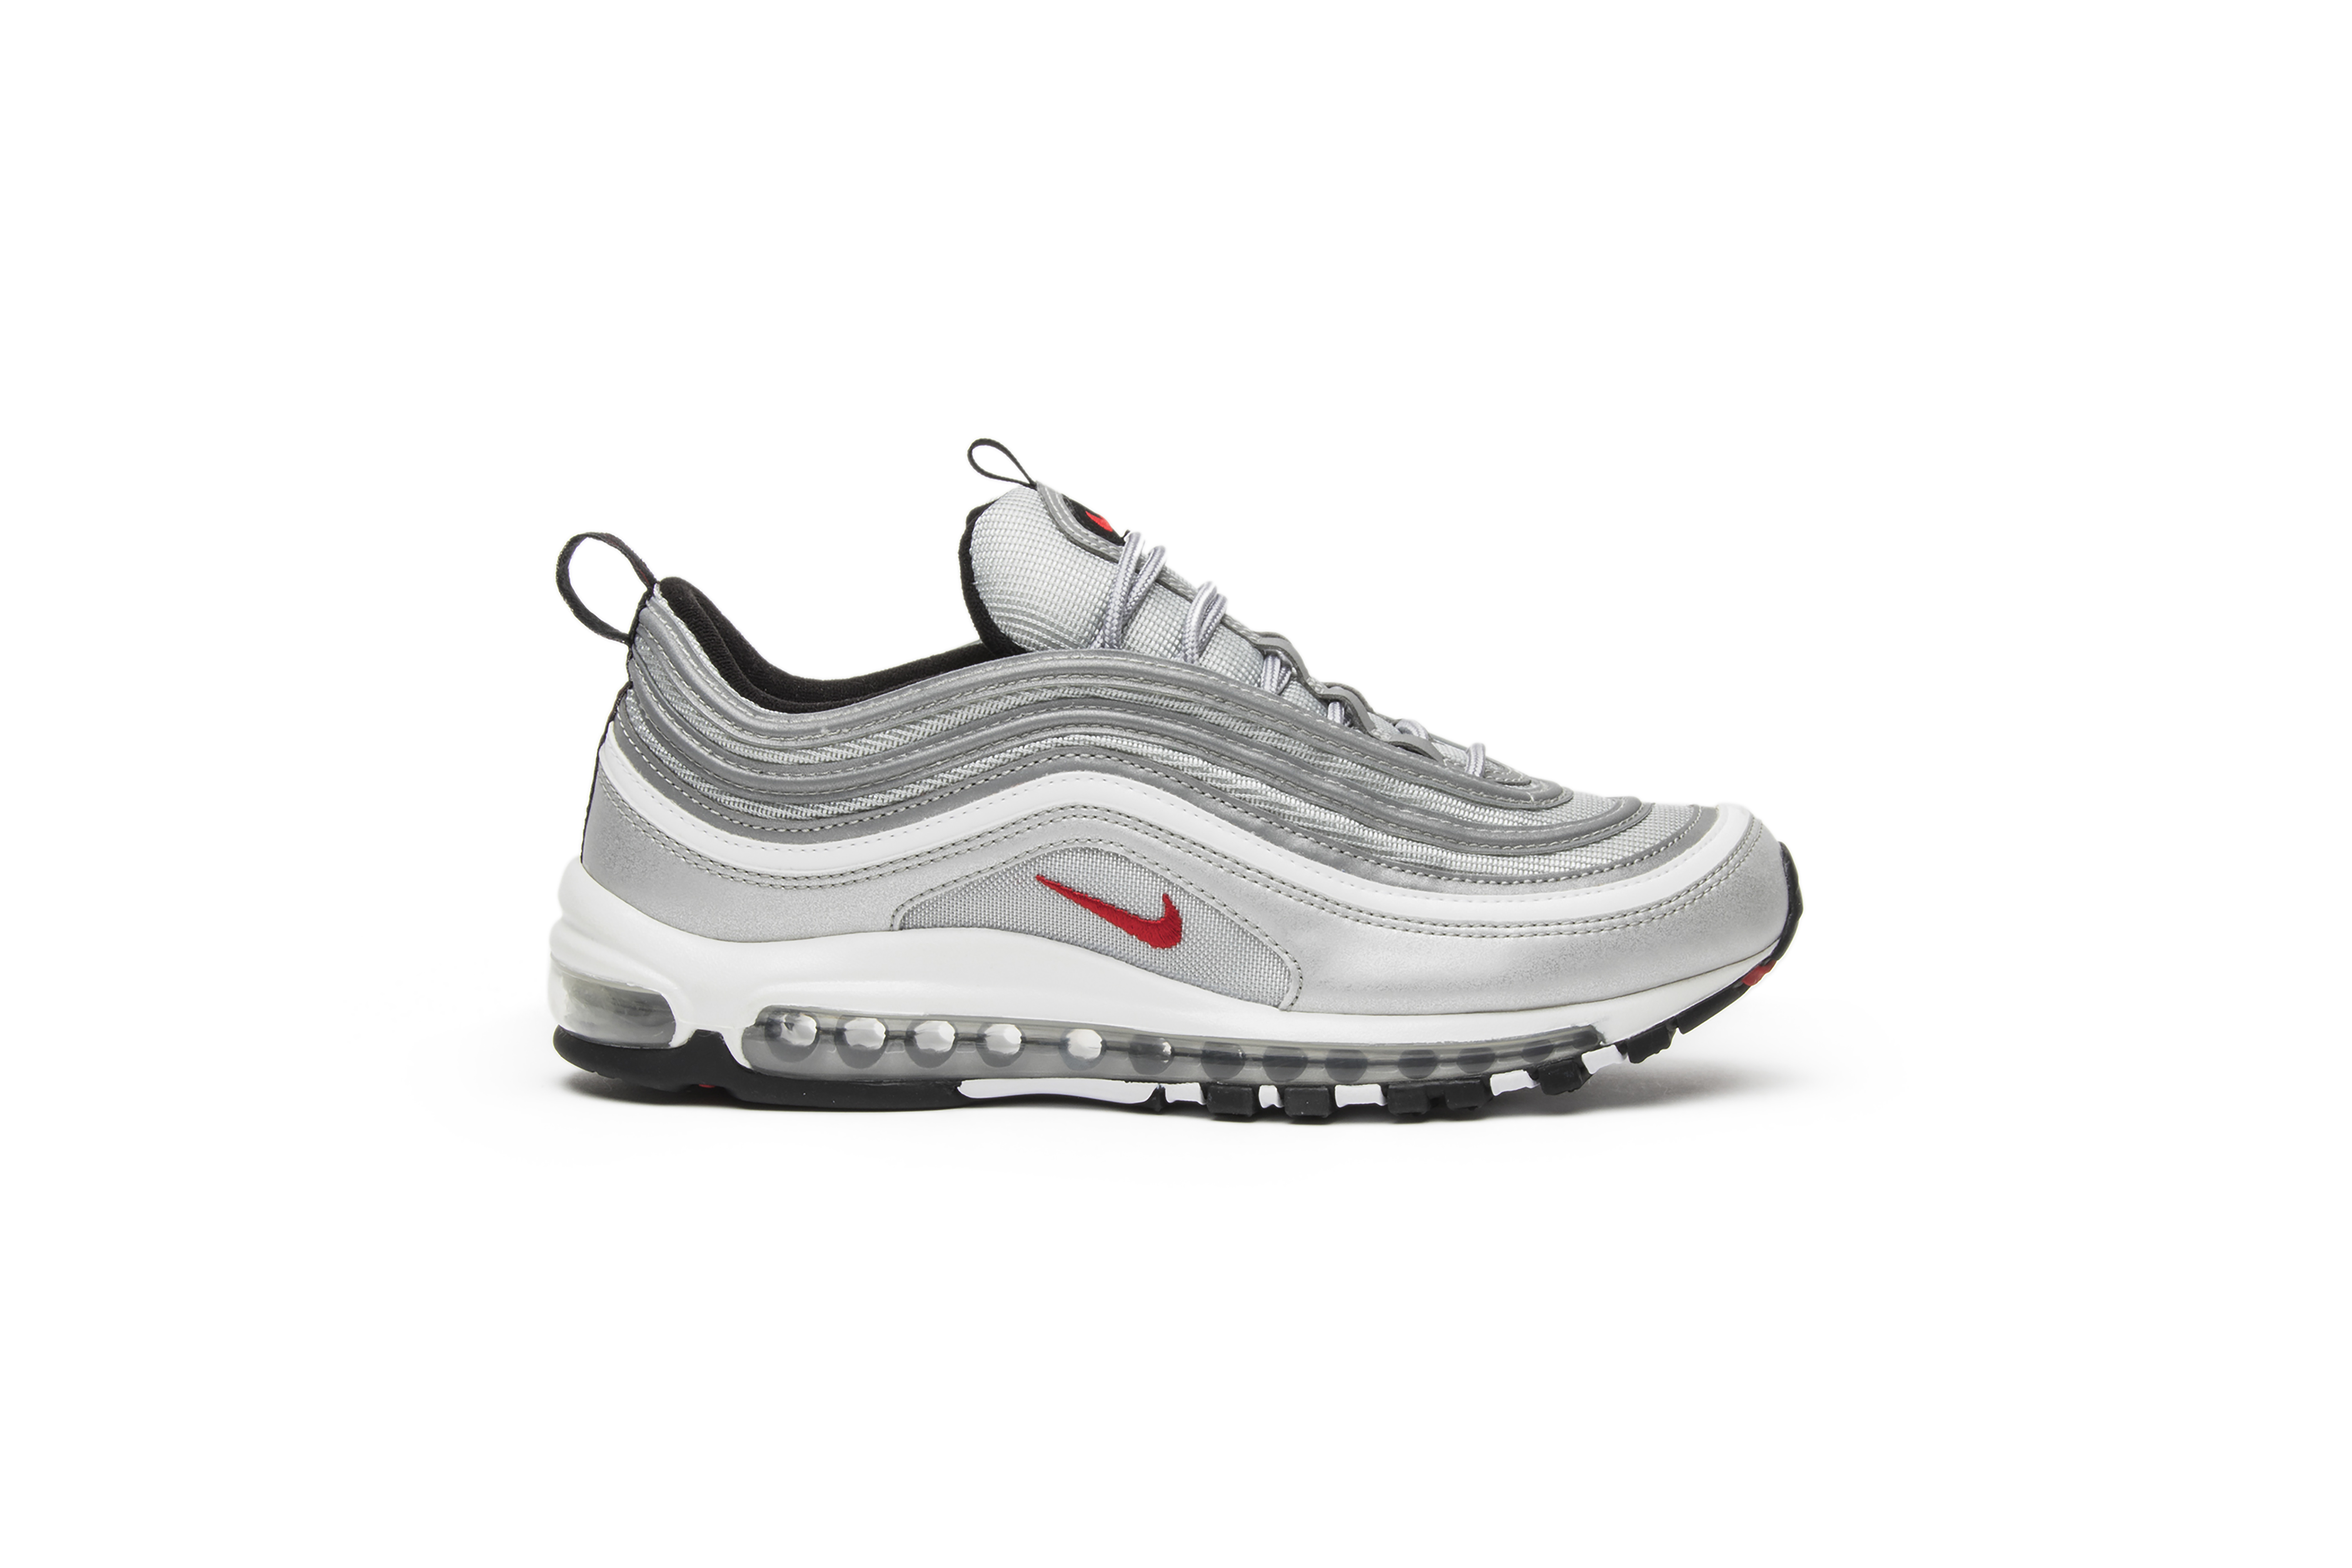 f0fb013363 To Celebrate Air Max Day: Here Are The Current Top Selling Air Max ...